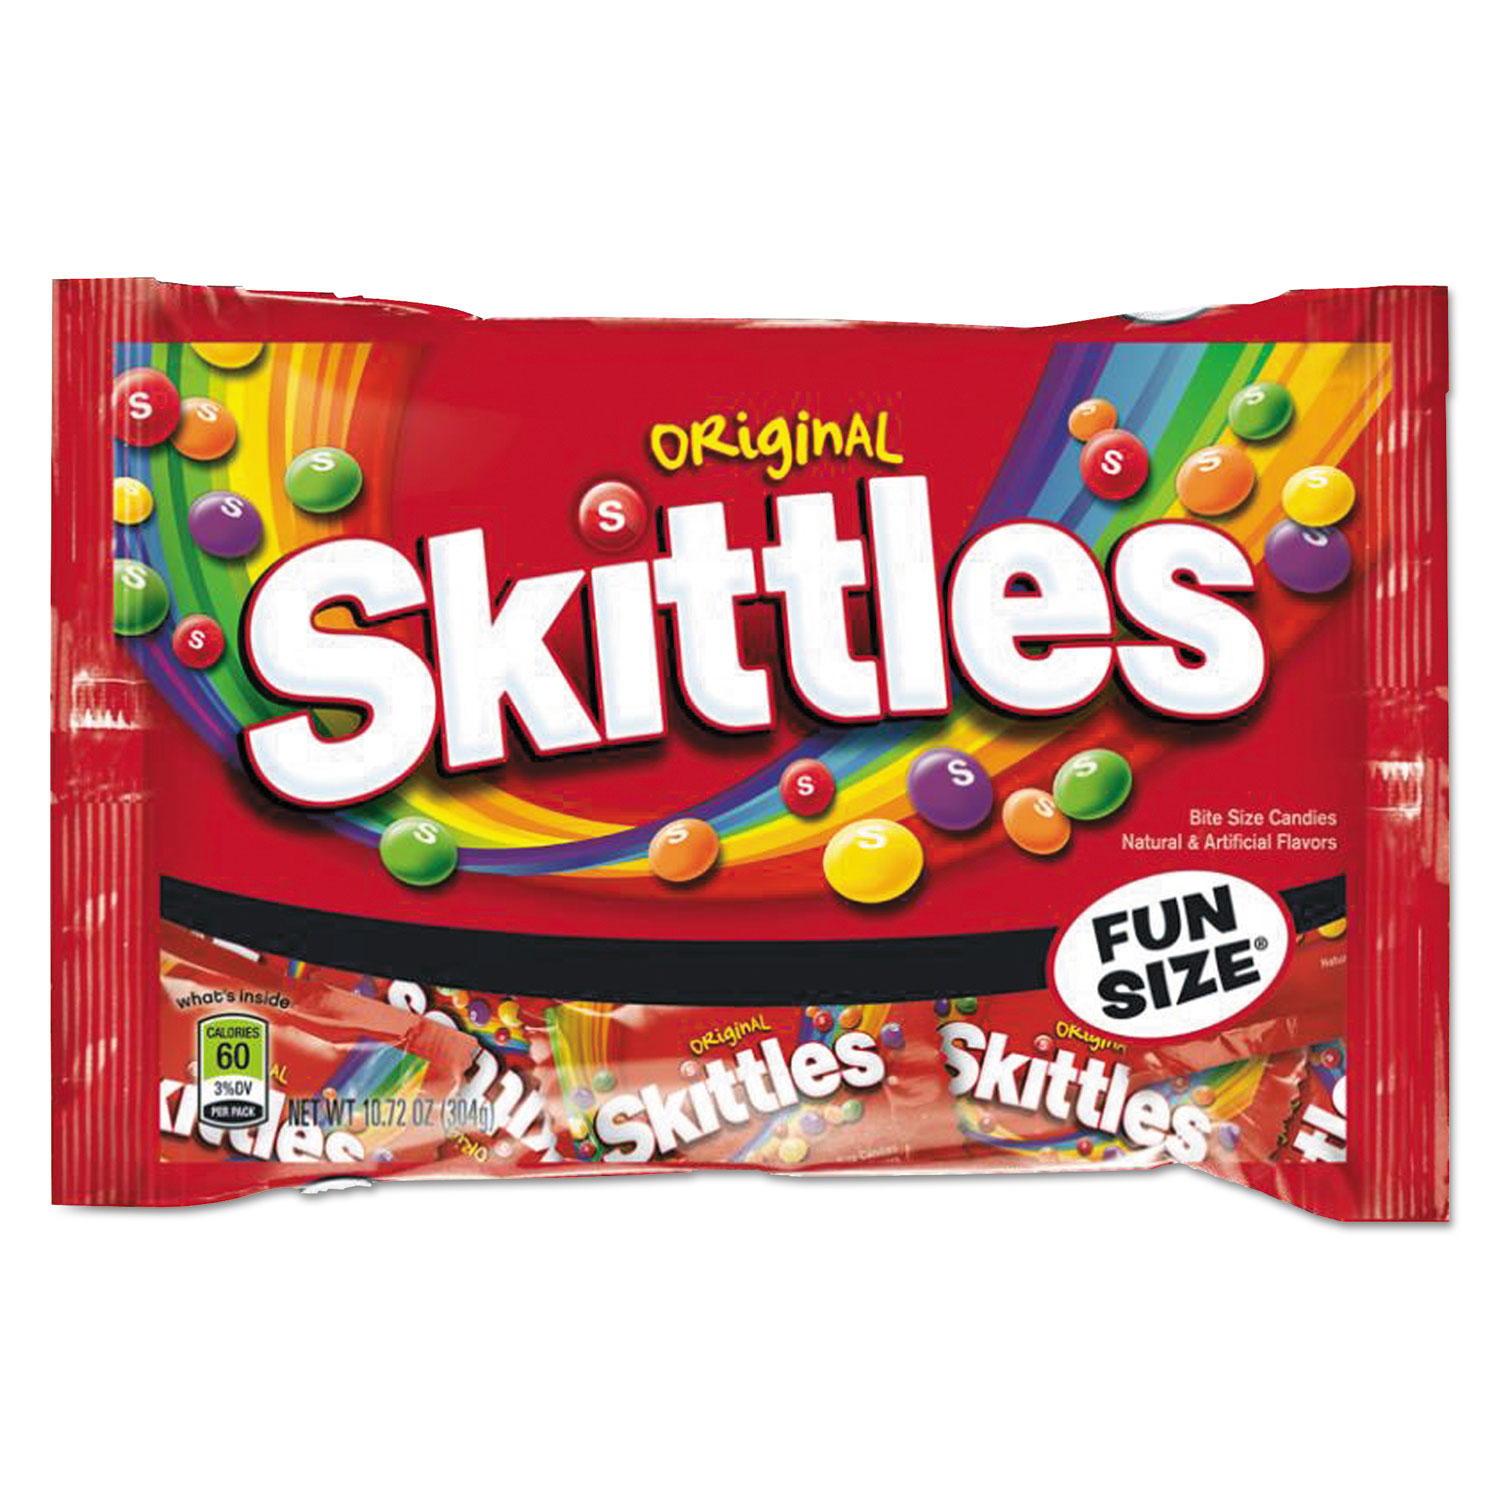 Skittles Chewy Candy, Original Skittle Flavor, 10.72 oz Bag